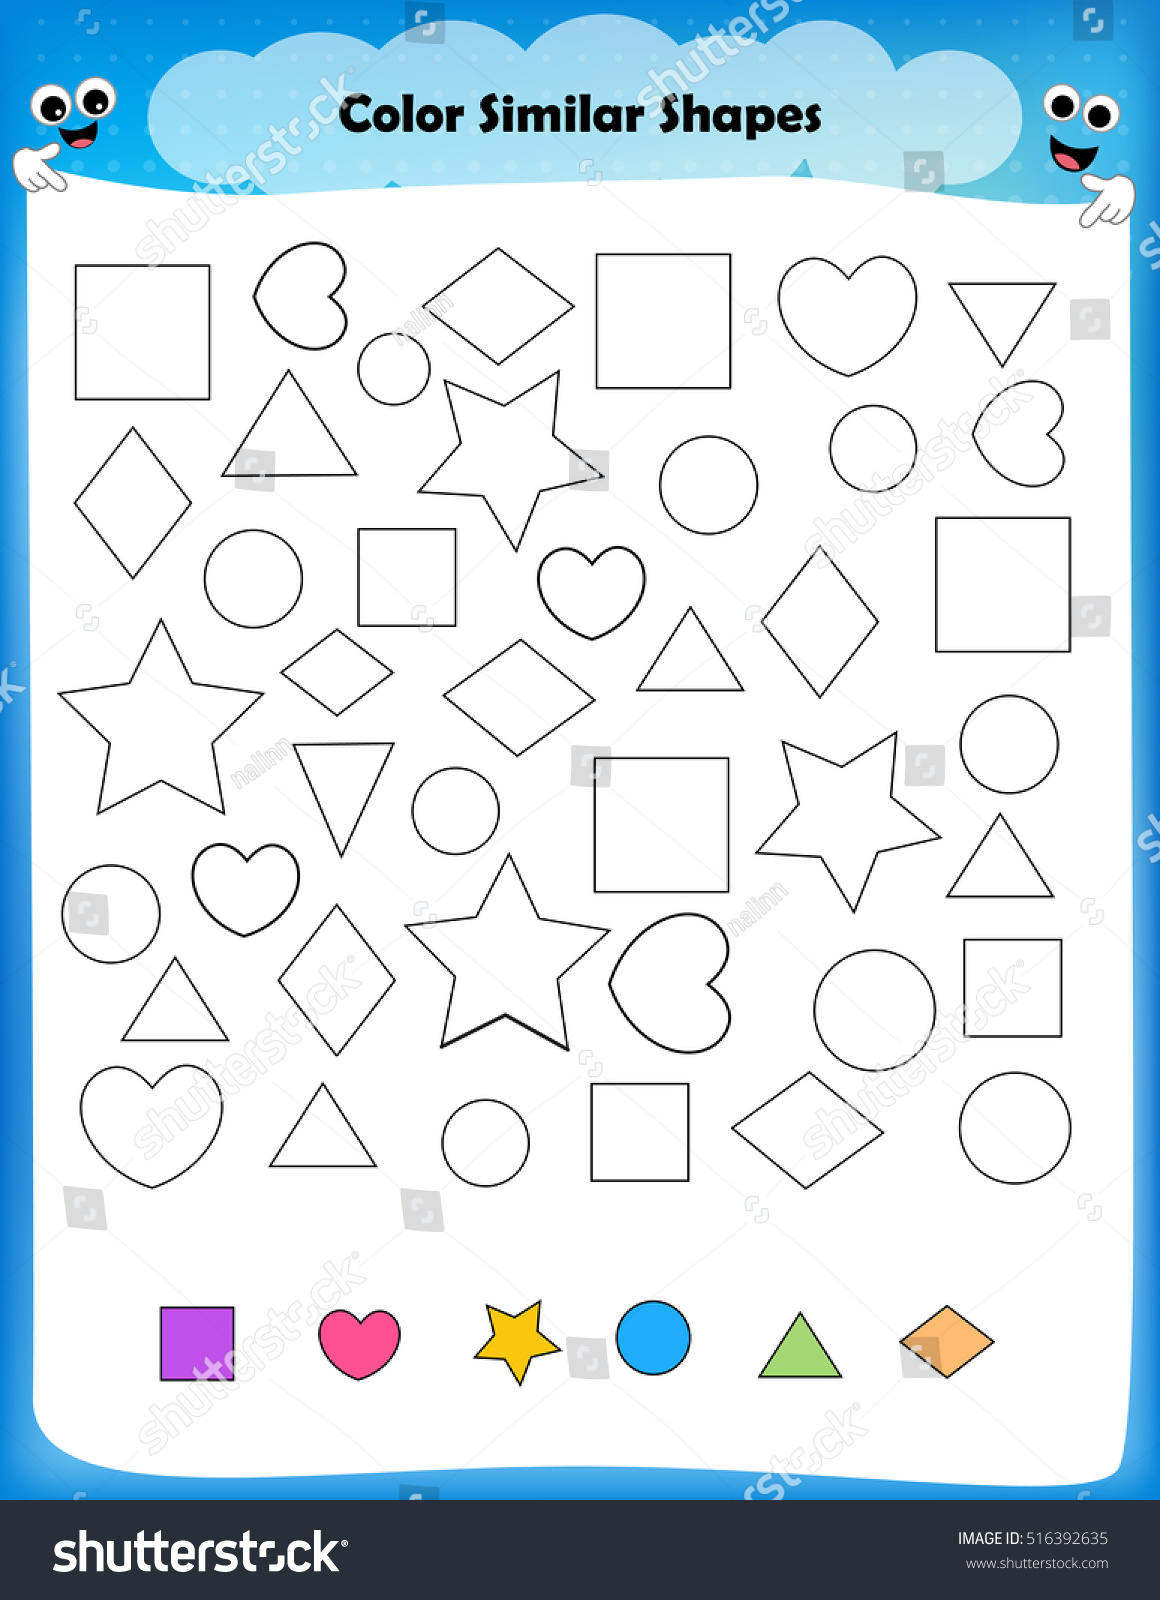 Color shape worksheets preschool - Worksheet Color Similar Shapes Worksheet For Preschool Kids